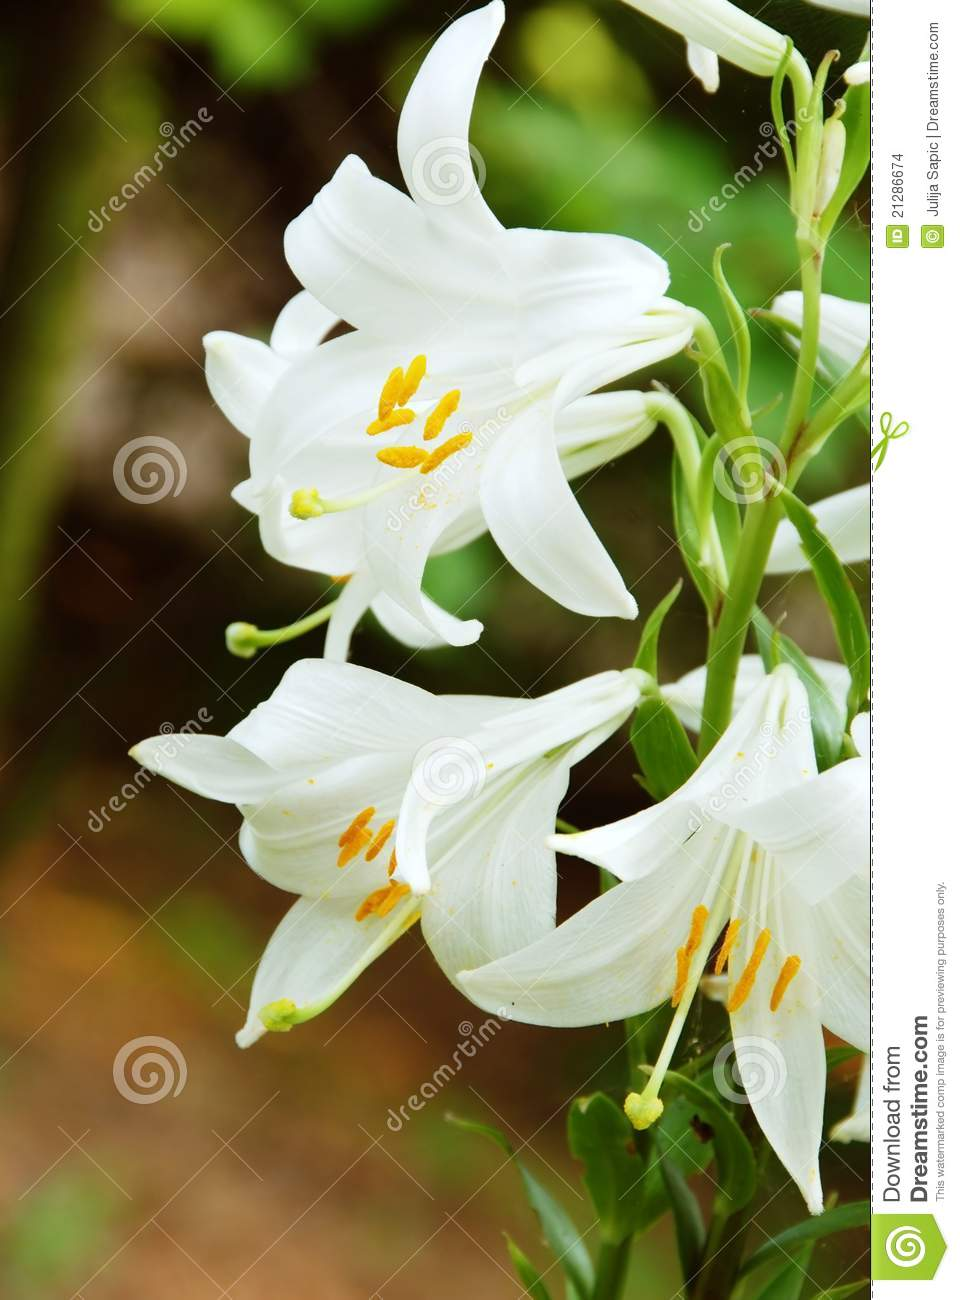 White Lily Flowers Stock Photo Image Of Nature Leaves 21286674